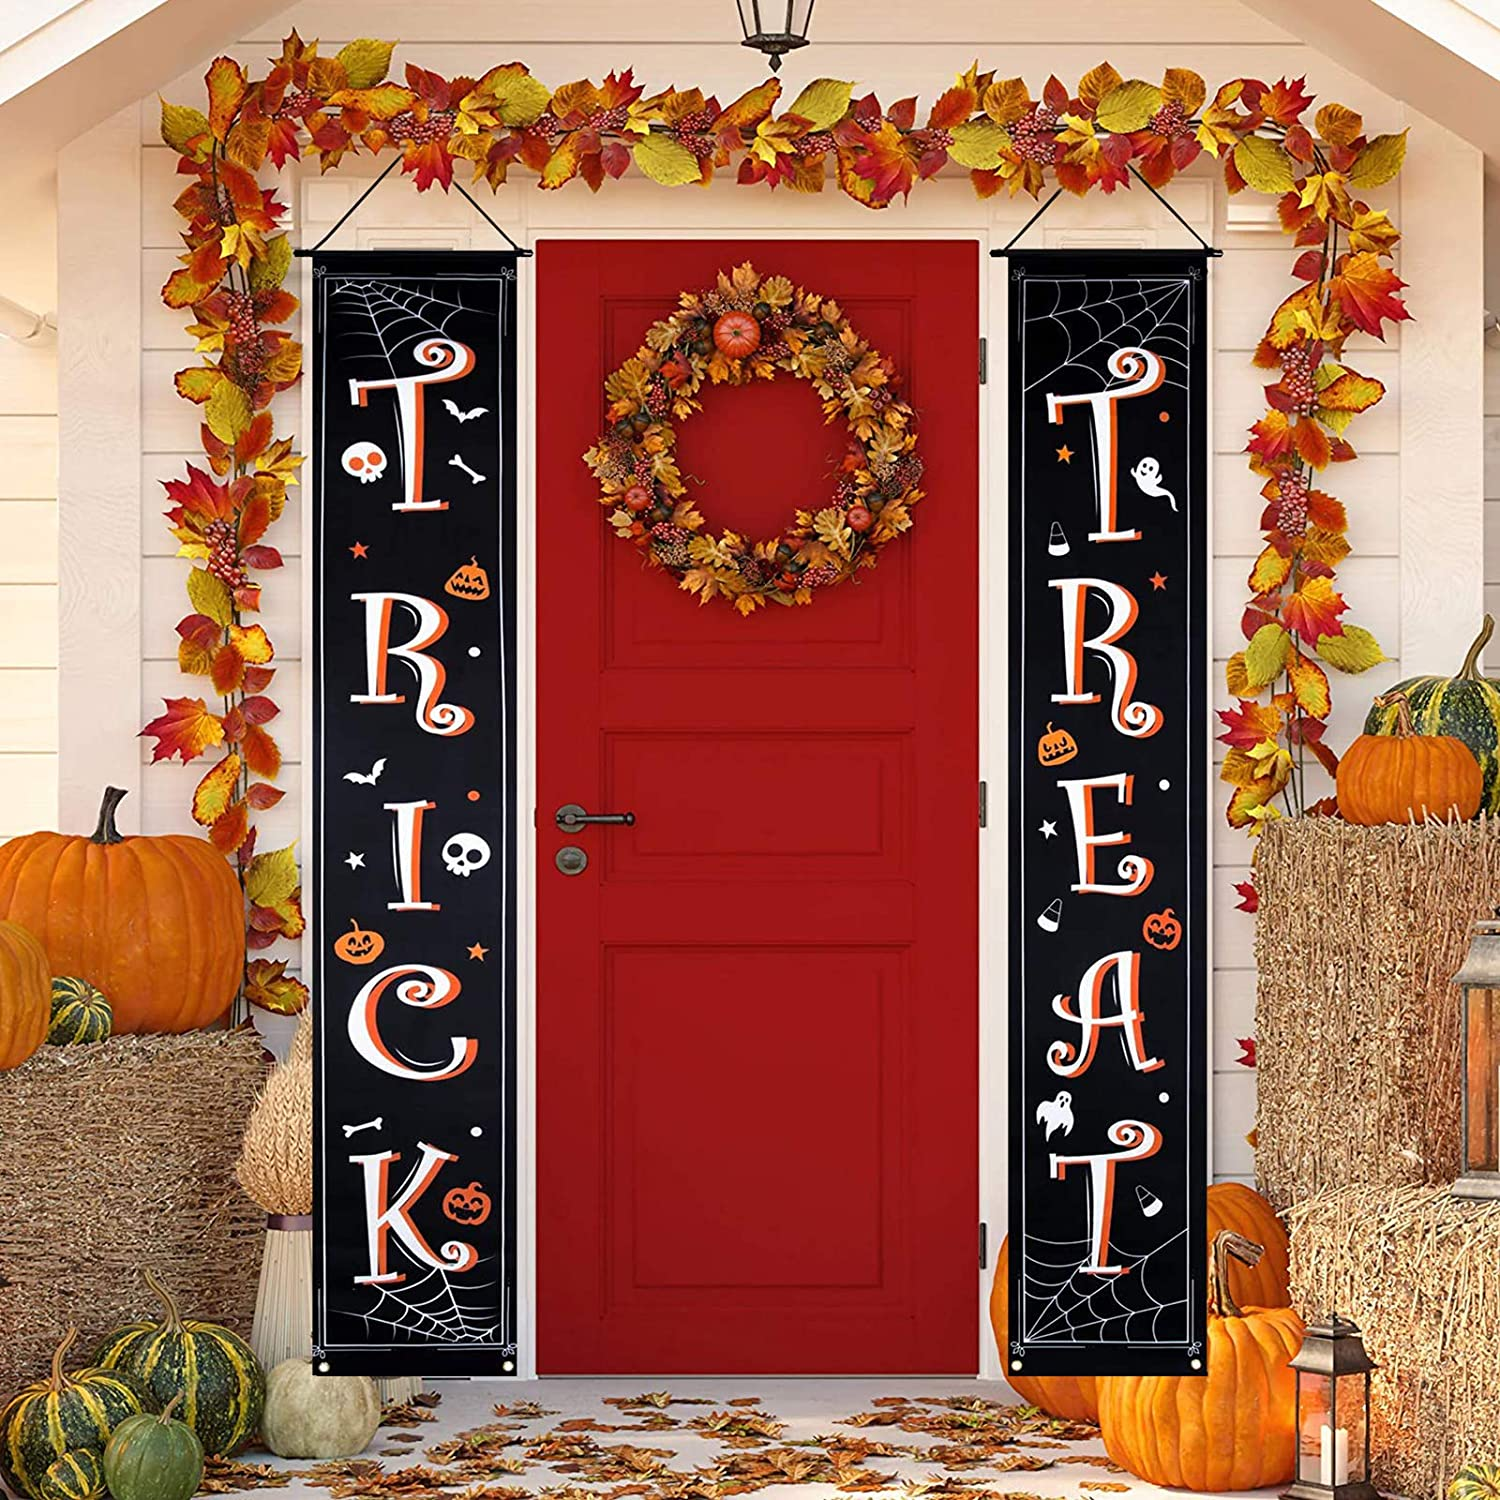 GoosWexmzl Halloween Decorations Outdoor, Trick or Treat Set Includes Trick or Treat Banner for Front Door Display for Garden, Halloween Porch Sign Set (Style 2)